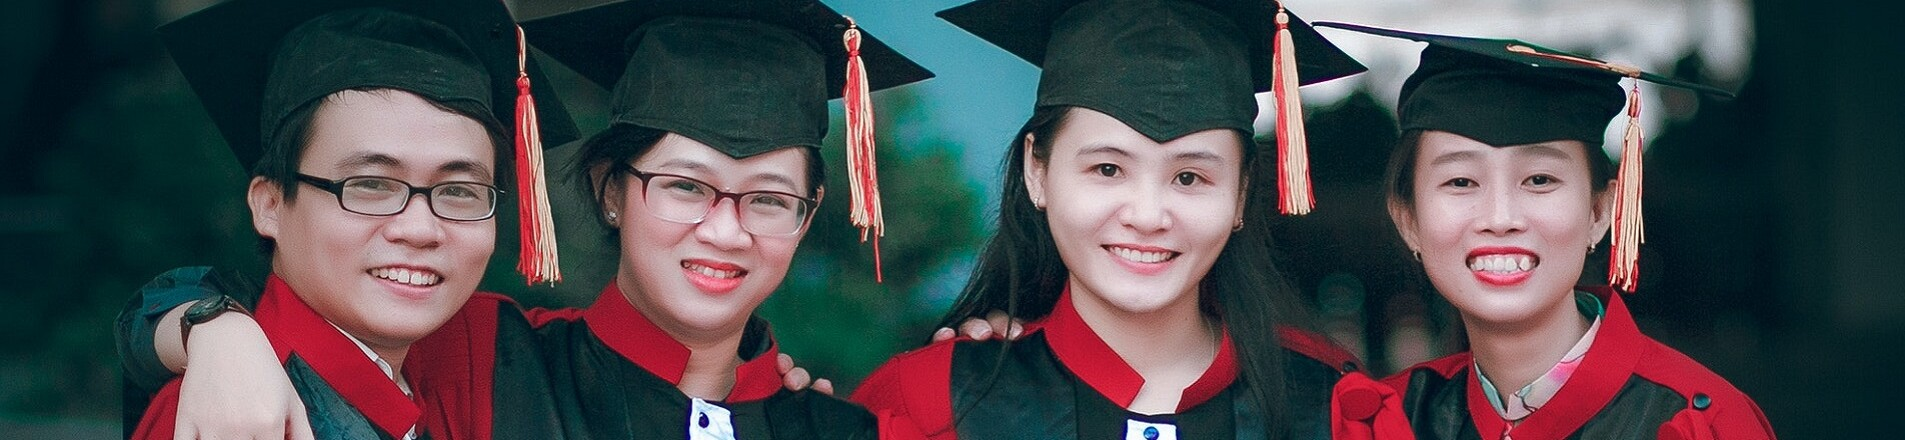 7 Tips For Surviving Real Life After Graduating From University